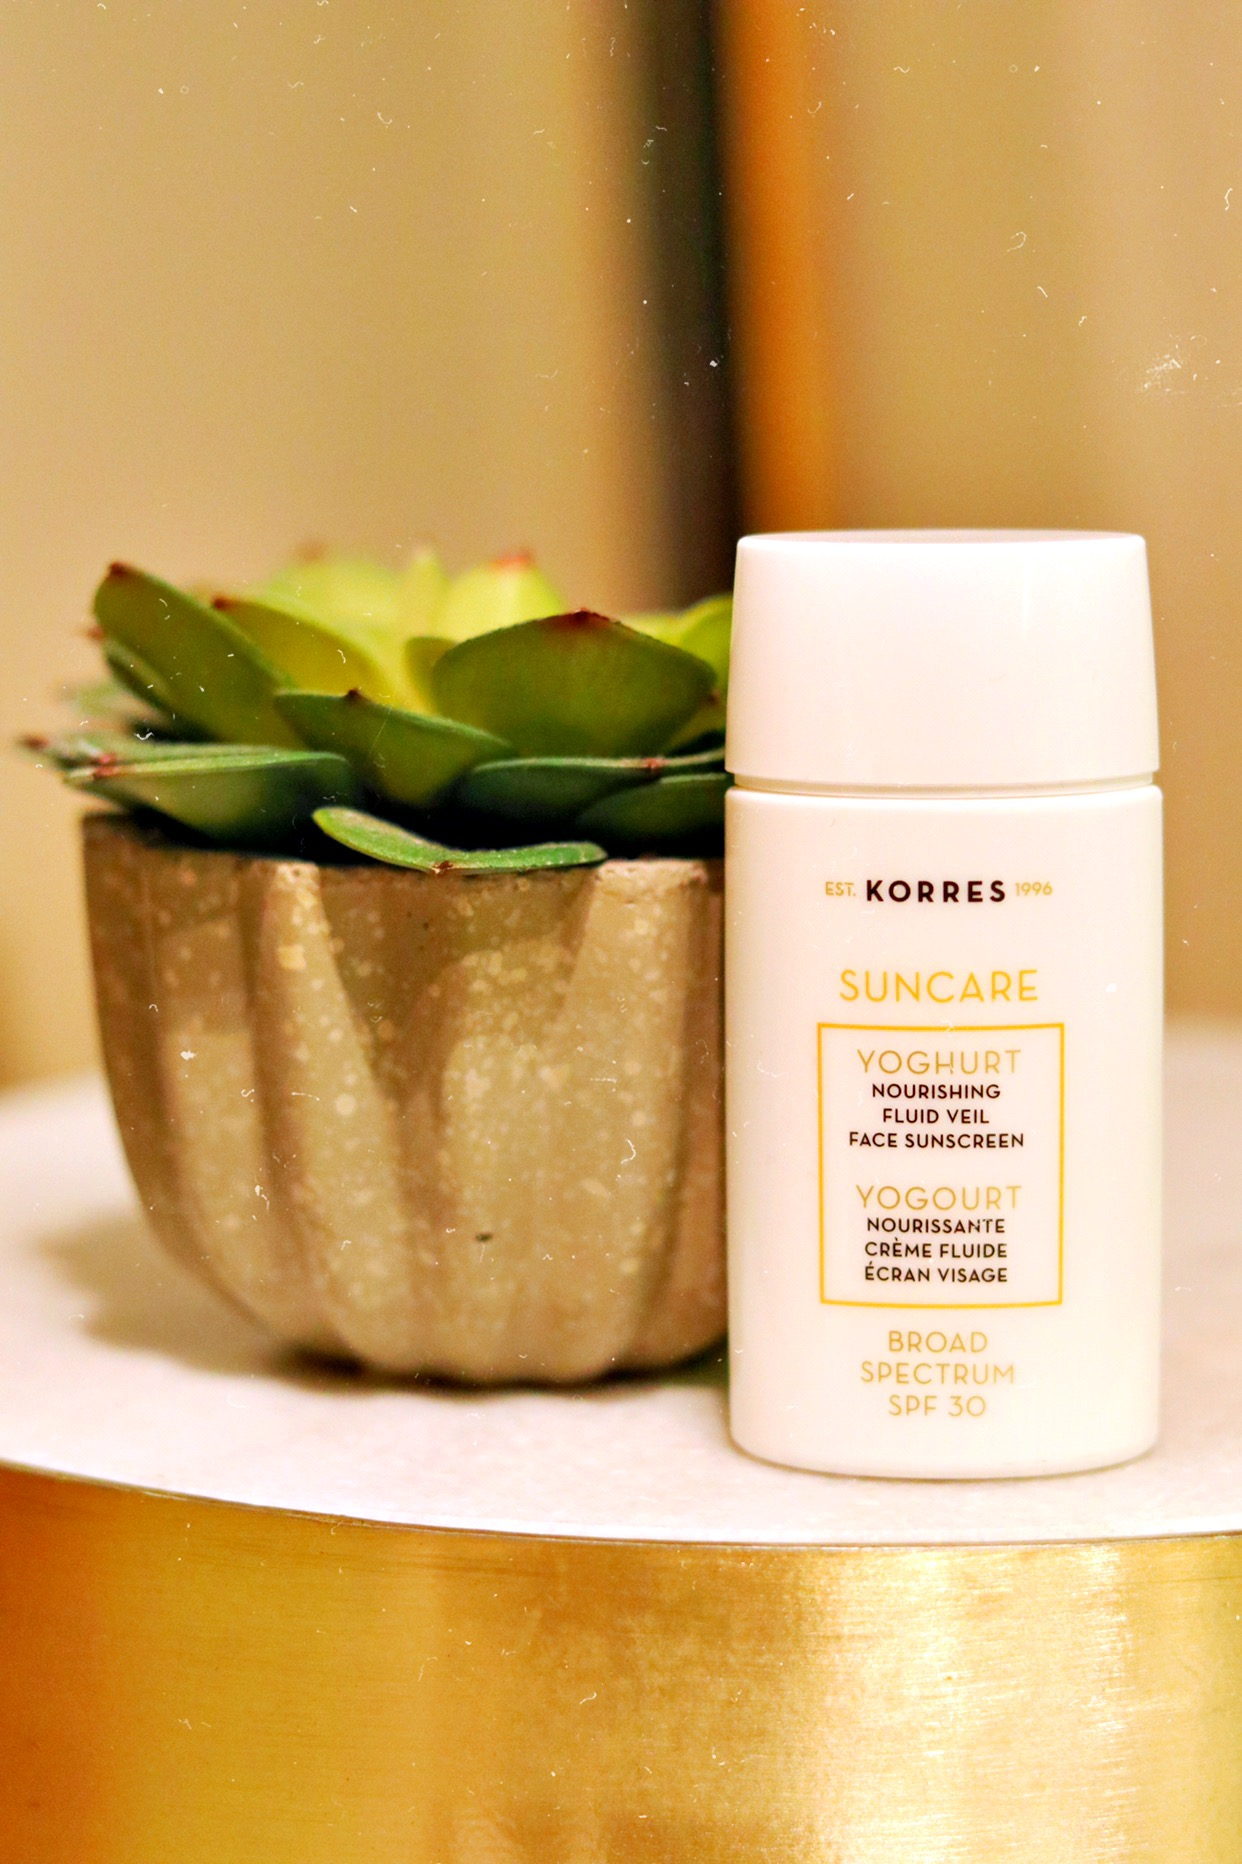 Suncare Essential |KORRES - Korres is a brand that came from a Greek homeopathic pharmacy over 20 years ago. they use natural + high quality ingredients that are environmentally friendly + cruelty free. they incorporate the use of greek flora directly from greece's unique environment. i decided to invest in good suncare so that i could protect my face + neck every day. i use korres Nourishing Fluid Veil Face Sunscreen SPF 30.favorite ingredients: Yoghurt which is Rich in skin-repairing proteins; they also included Rice & Camapu Extract for calming, and Provitamin B5why: i love that i can add a few drops into my moisturizer to create a daily sun barrier. it's very lightweight but still has a hint of that sunscreen scent so you know it's really working.when: i try to use it every single day